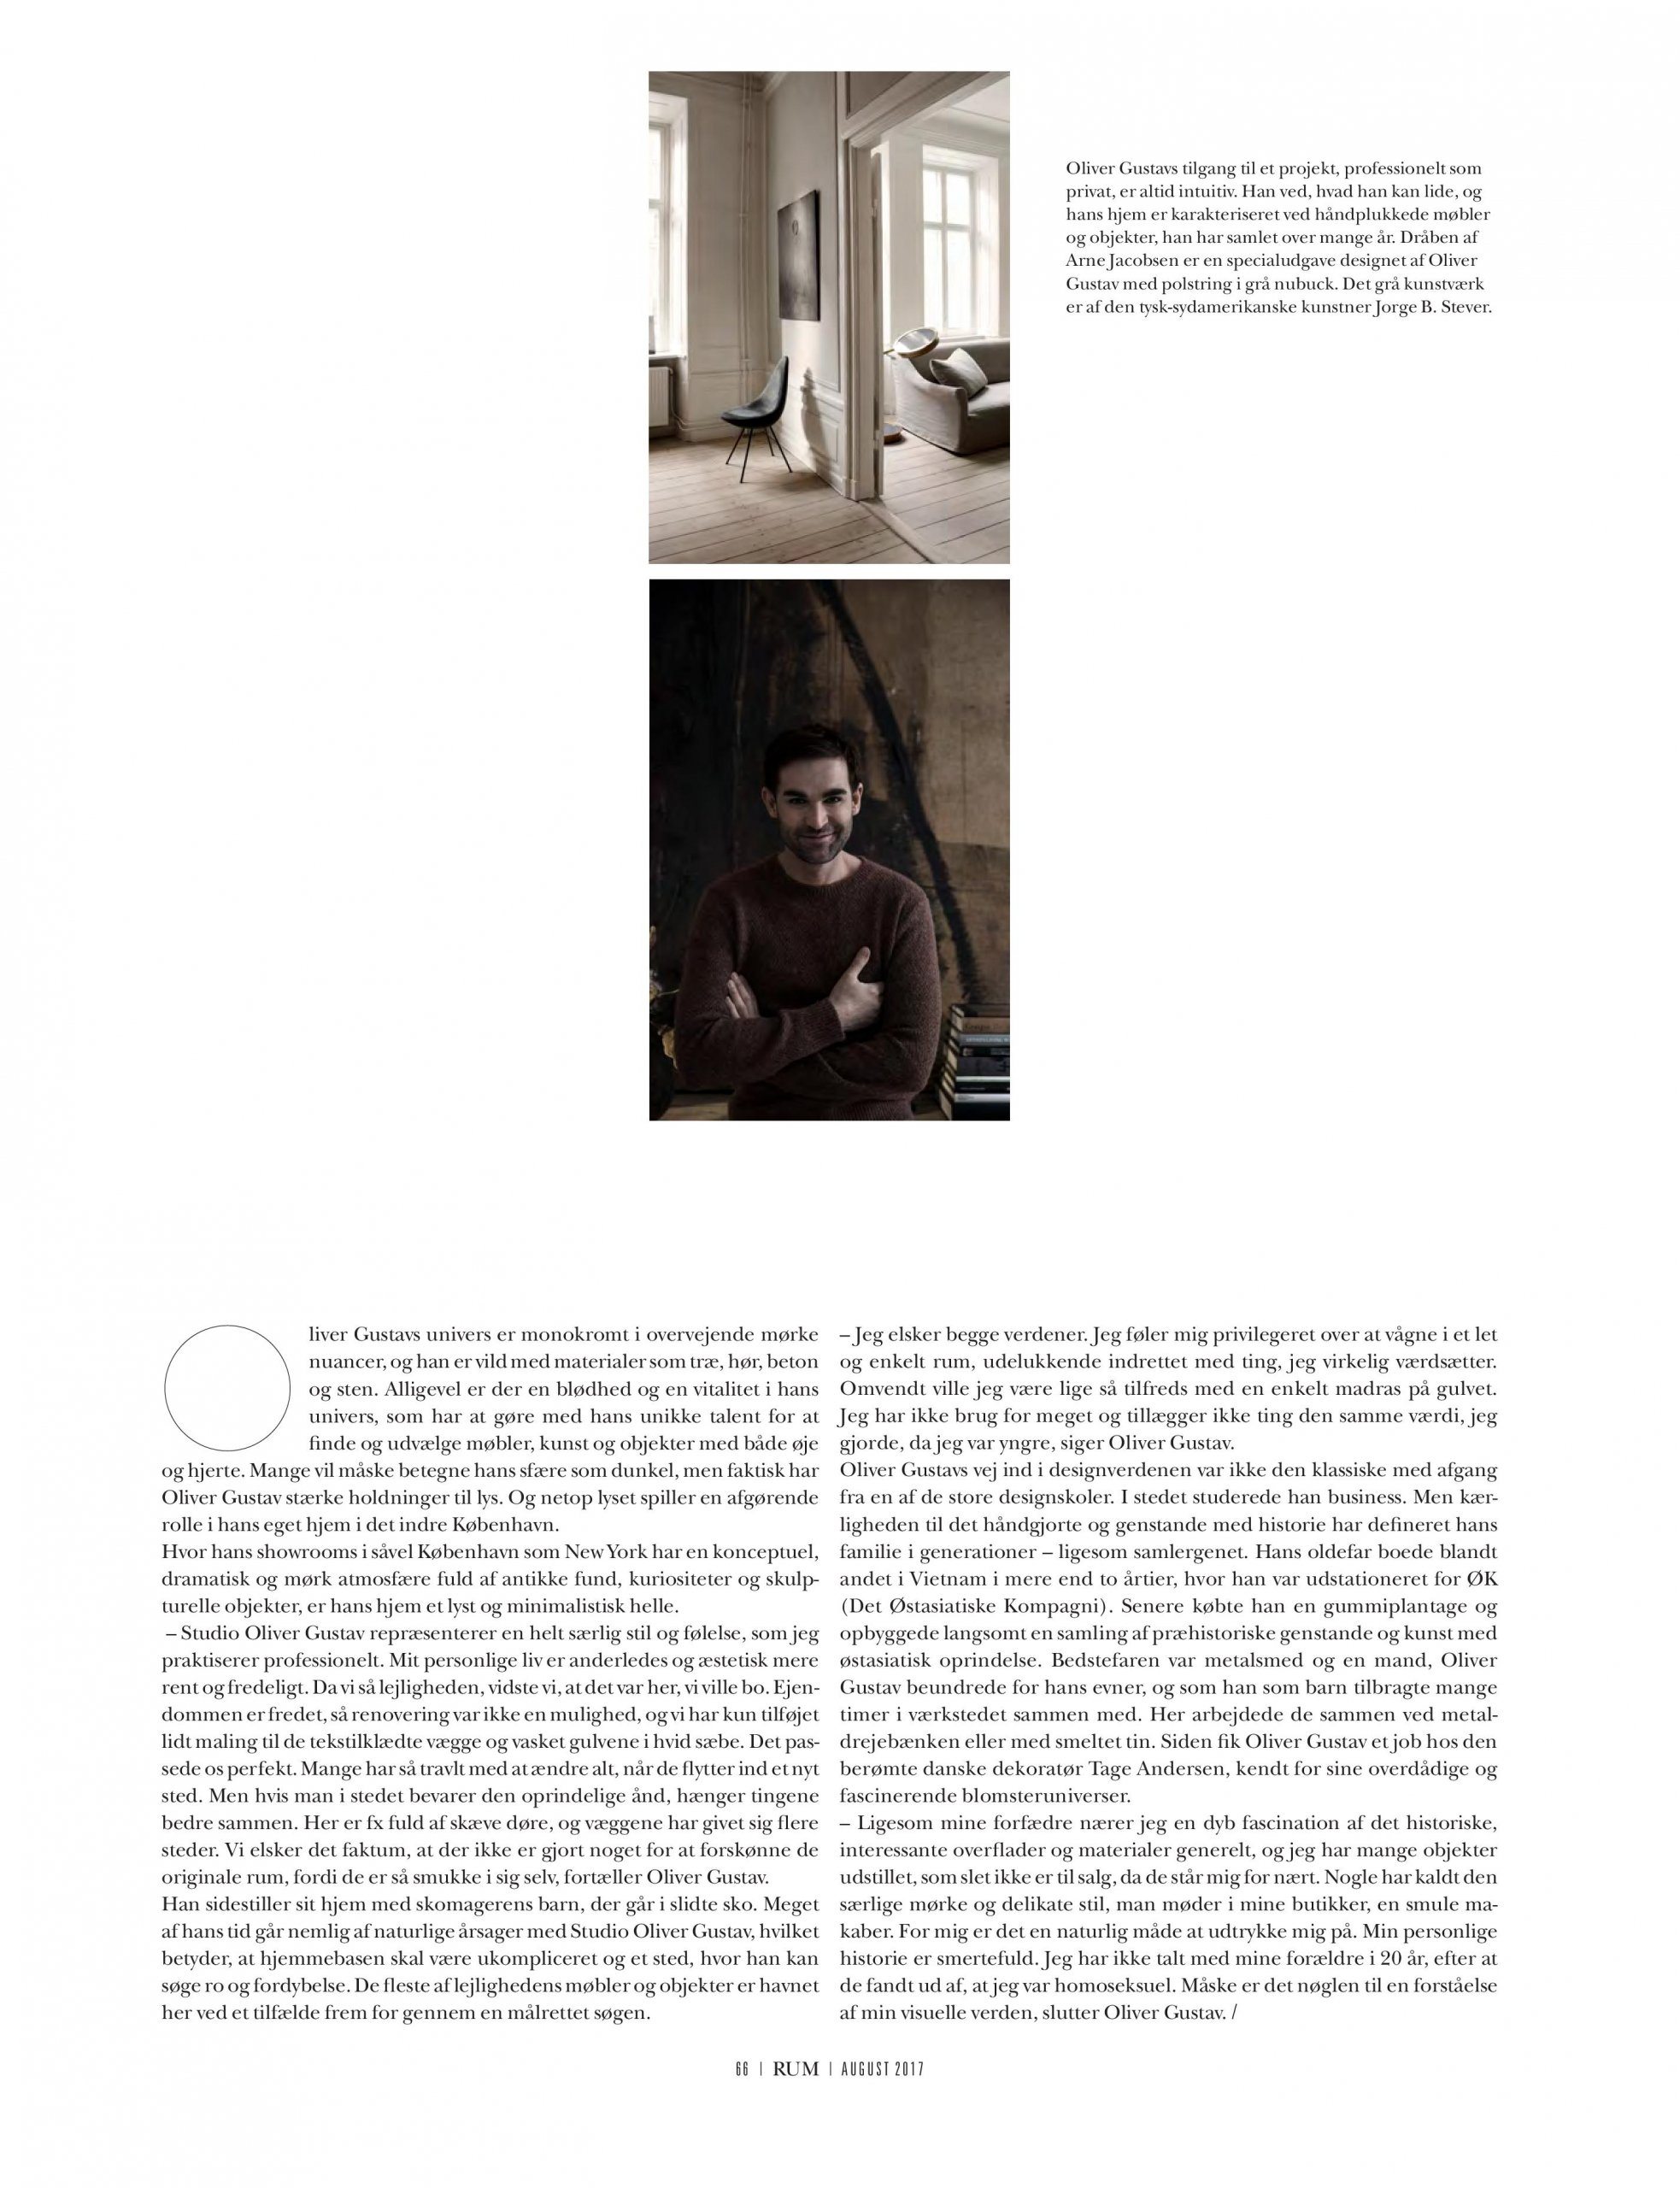 Interview in RUM magazine with studio Oliver Gustav